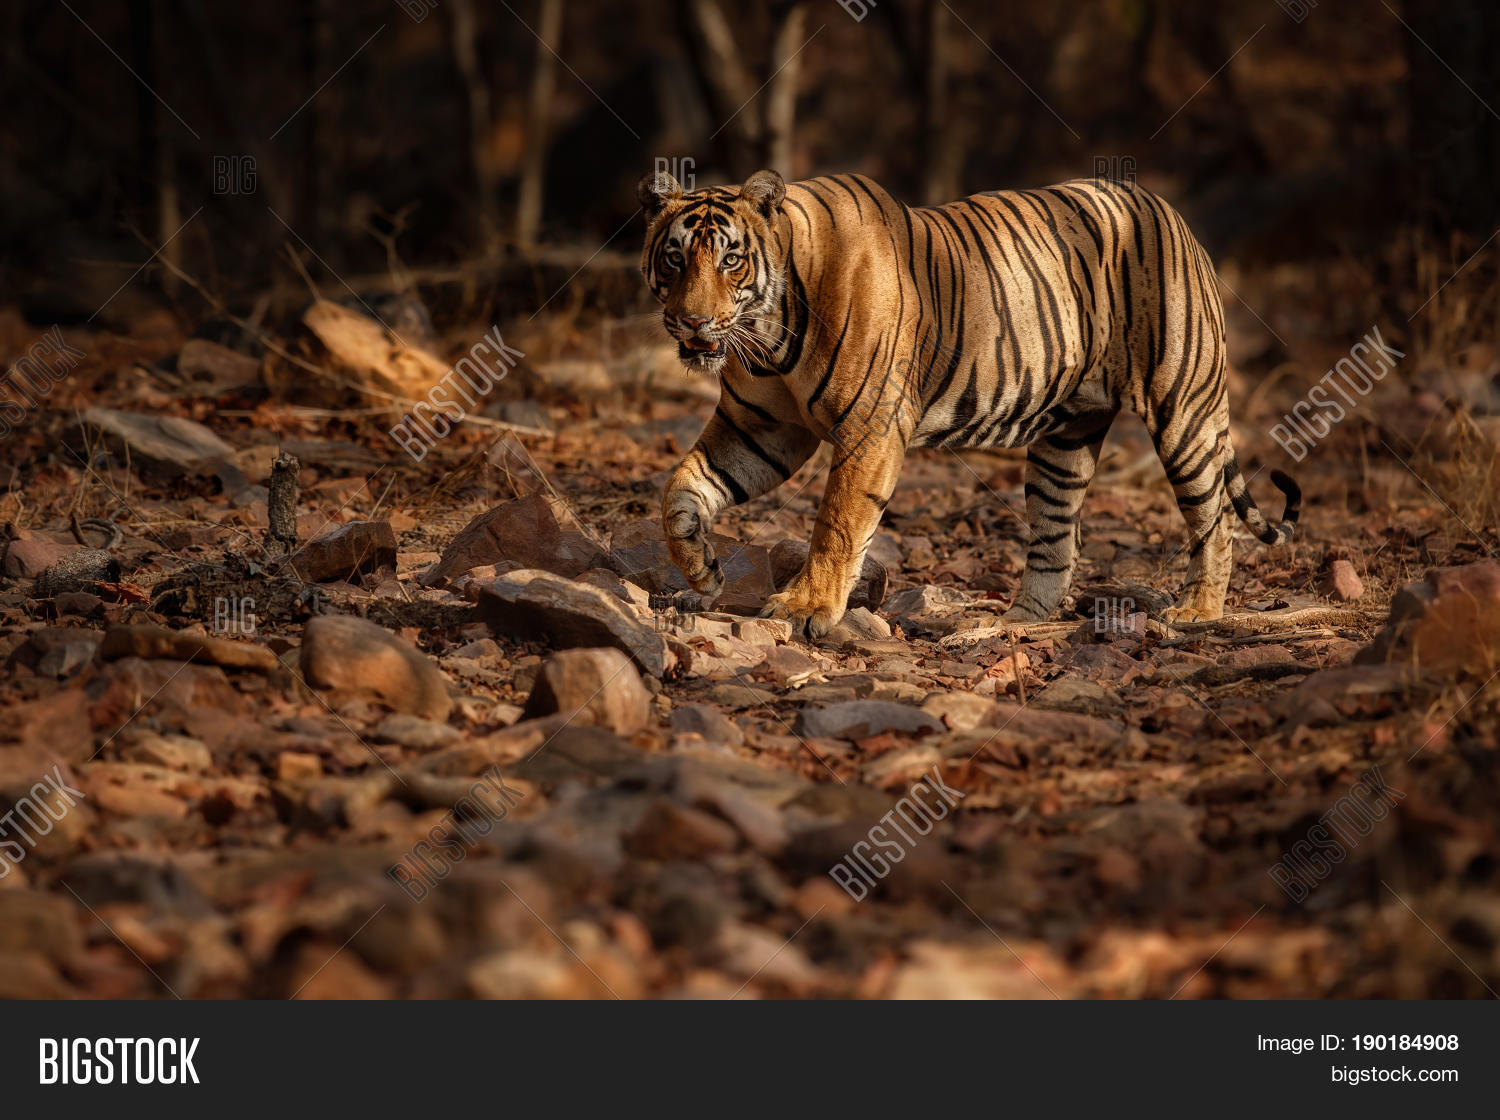 composition on tiger